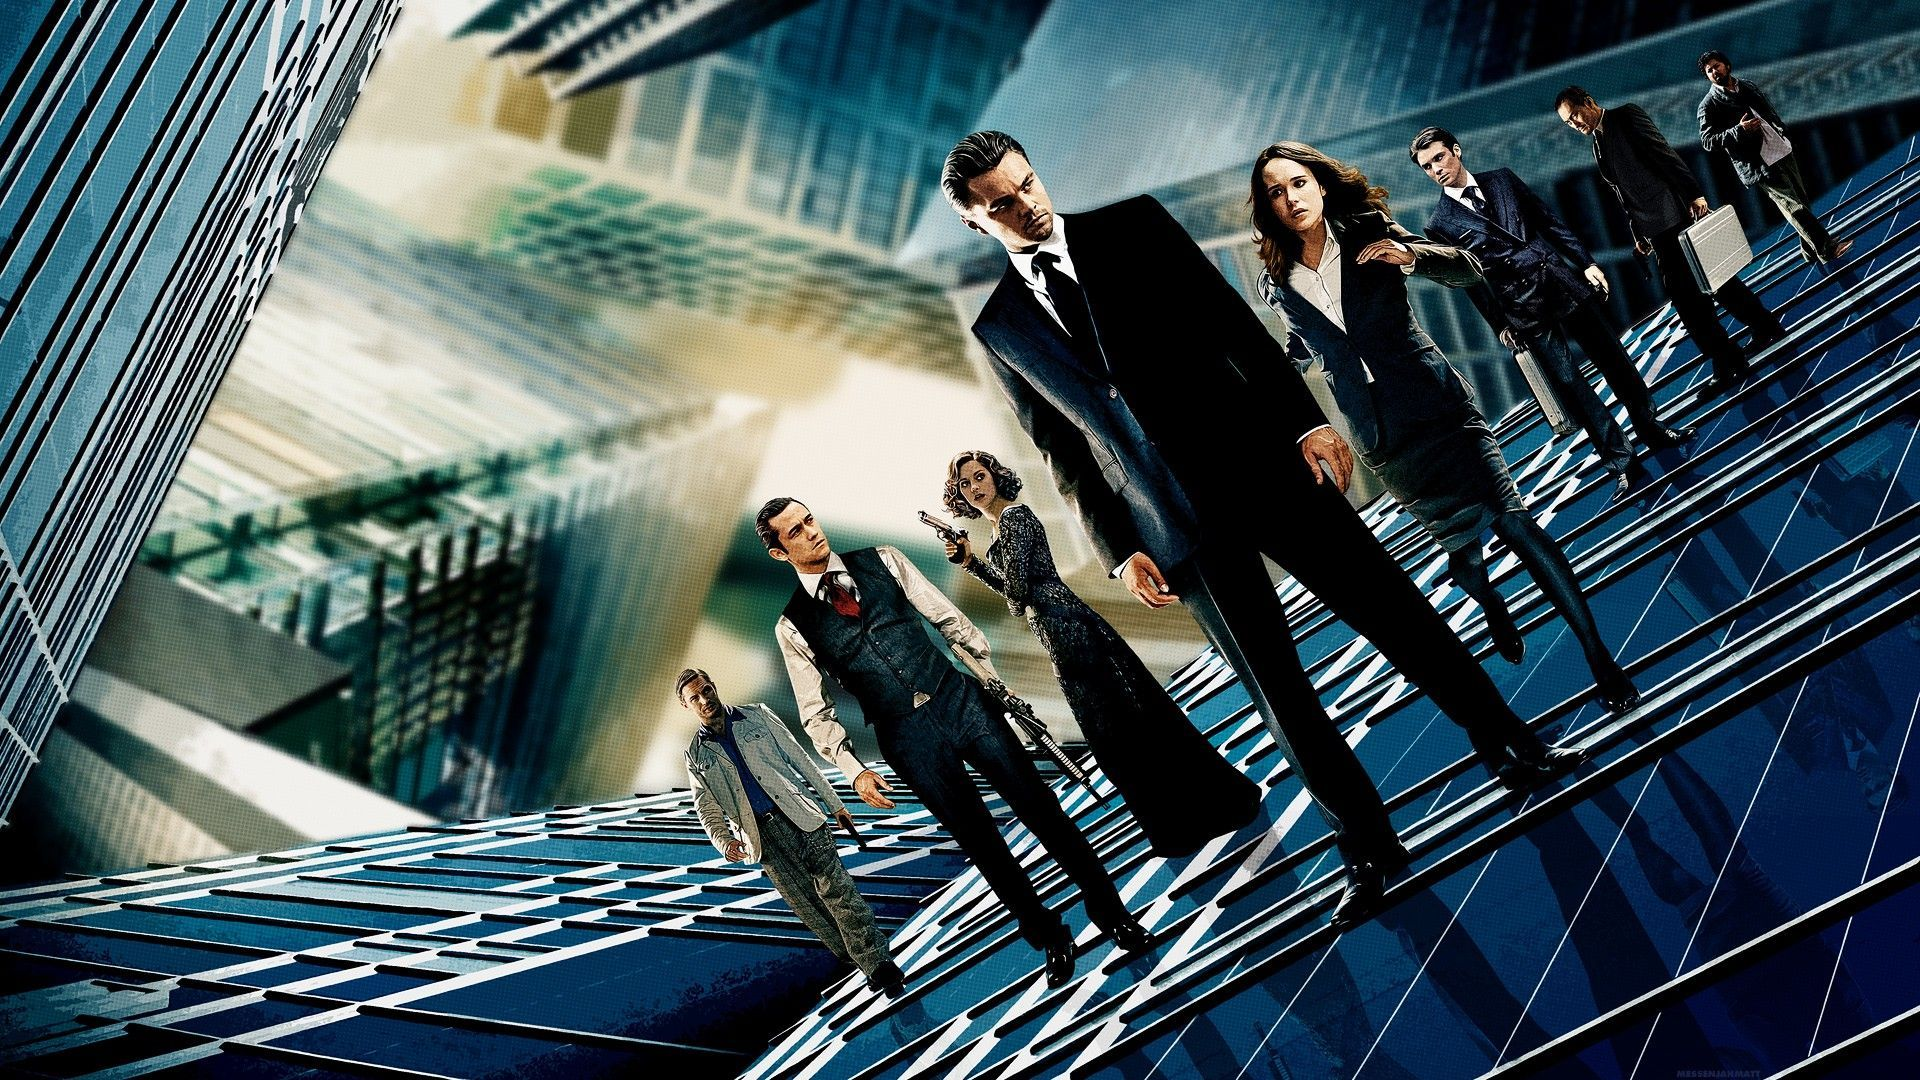 Inception: Inception Wallpapers, Pictures, Images